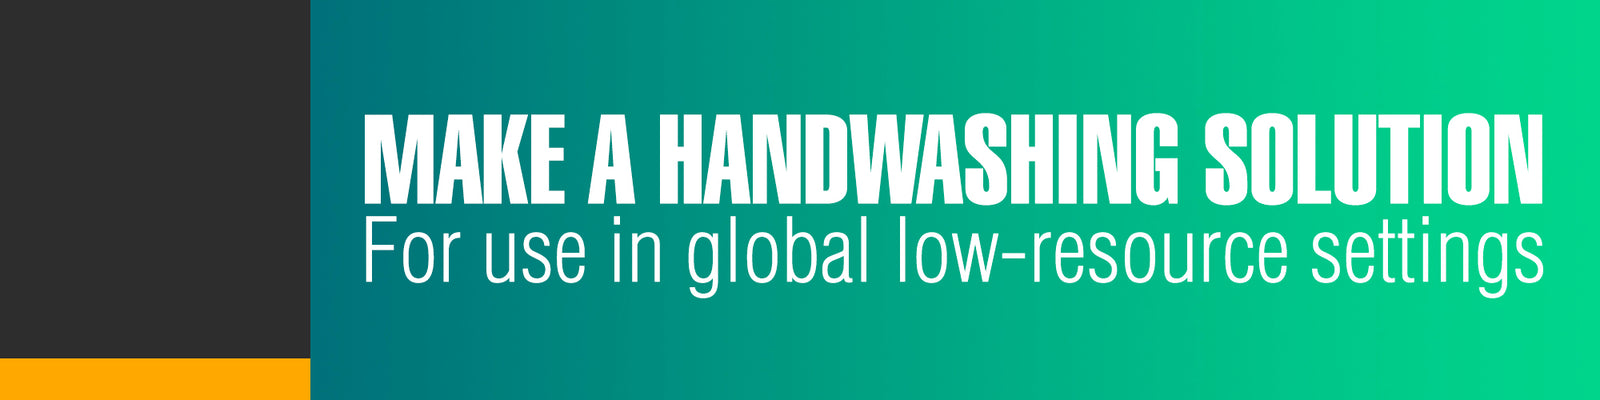 Make a Handwashing Solution For Use in Global, Low-Resource Settings